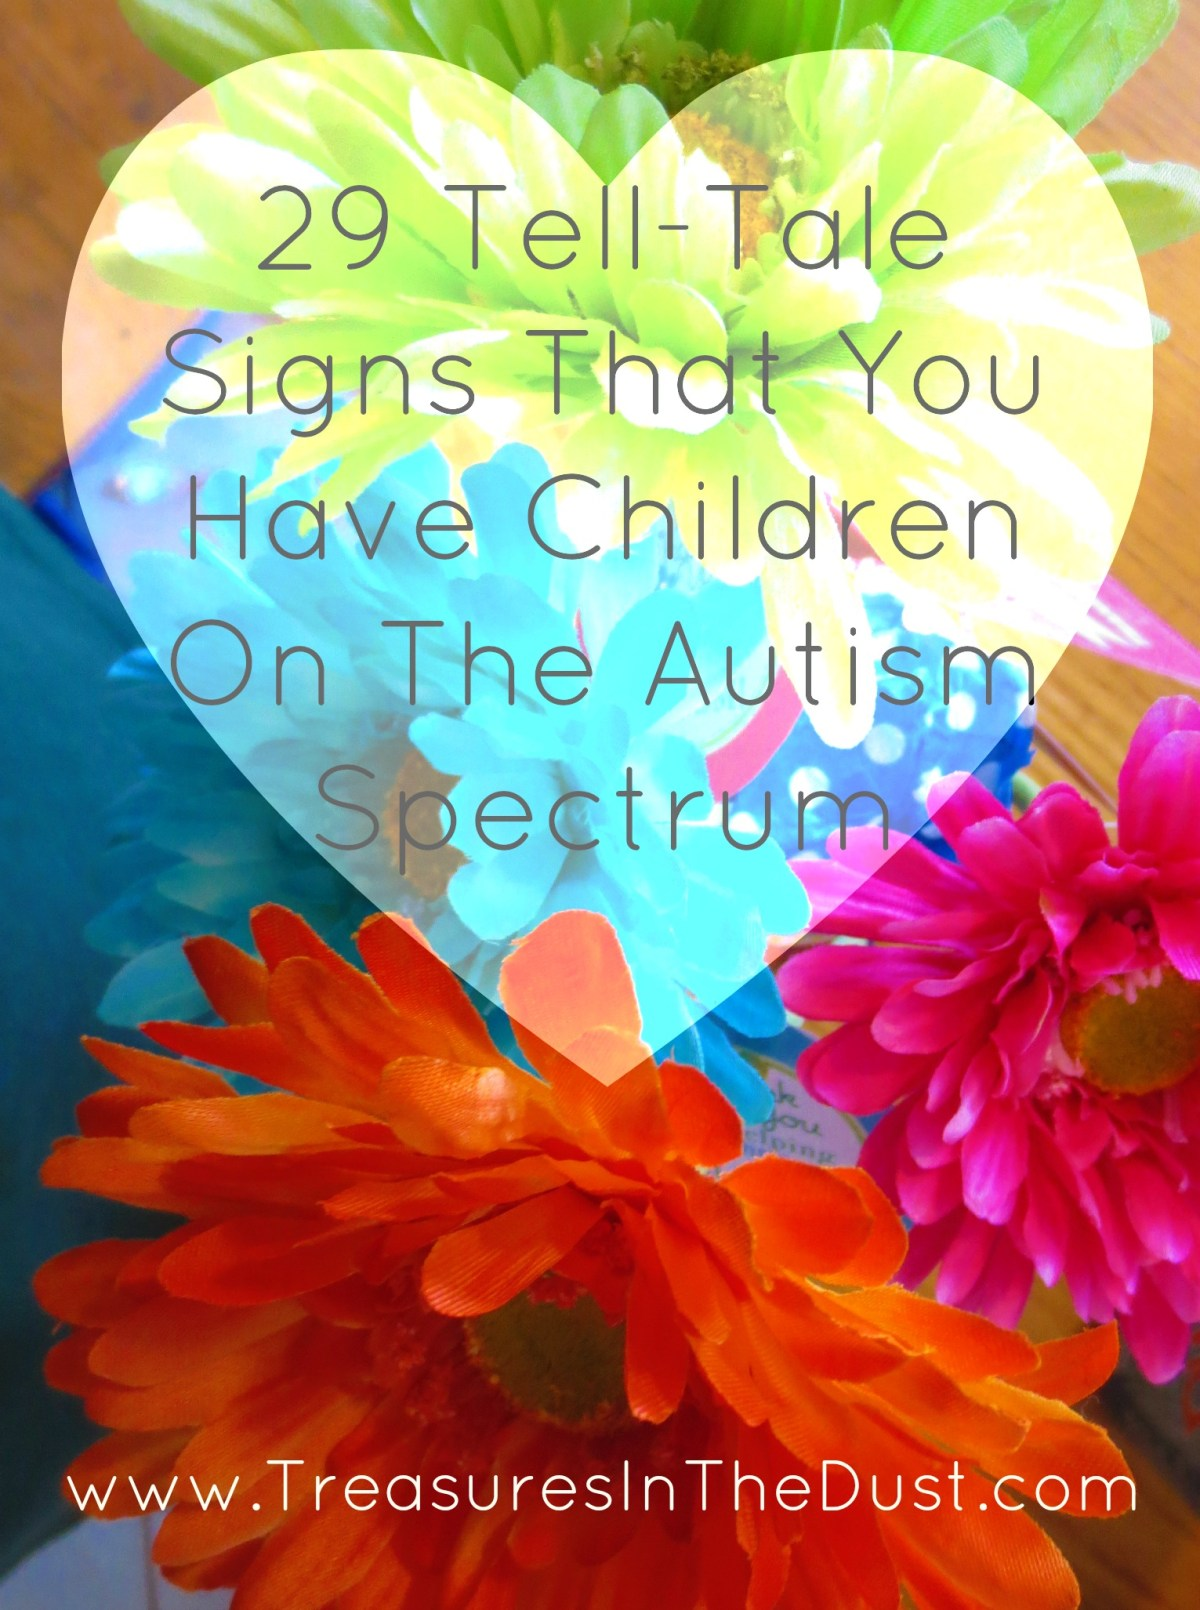 29 Tell-Tale Signs That You Have Children On The Autism Spectrum